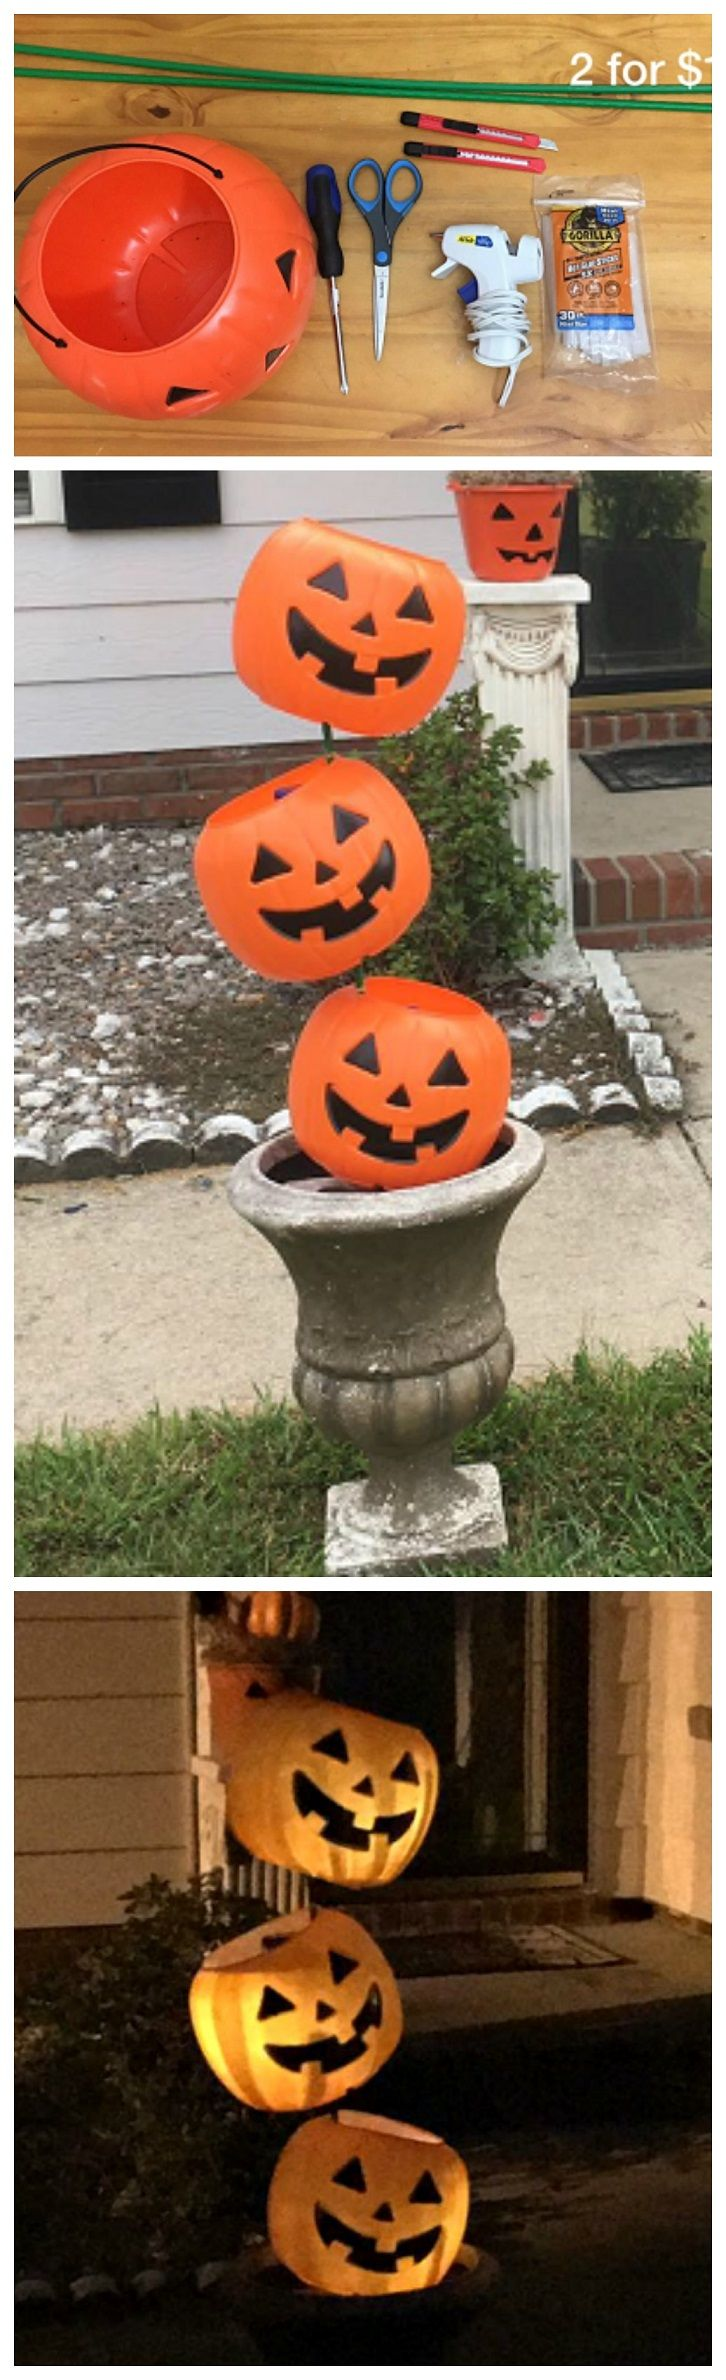 make a plastic pumpkin pail tipsy decoration for halloween such a cheap and easy craft - Unusual Halloween Decorations